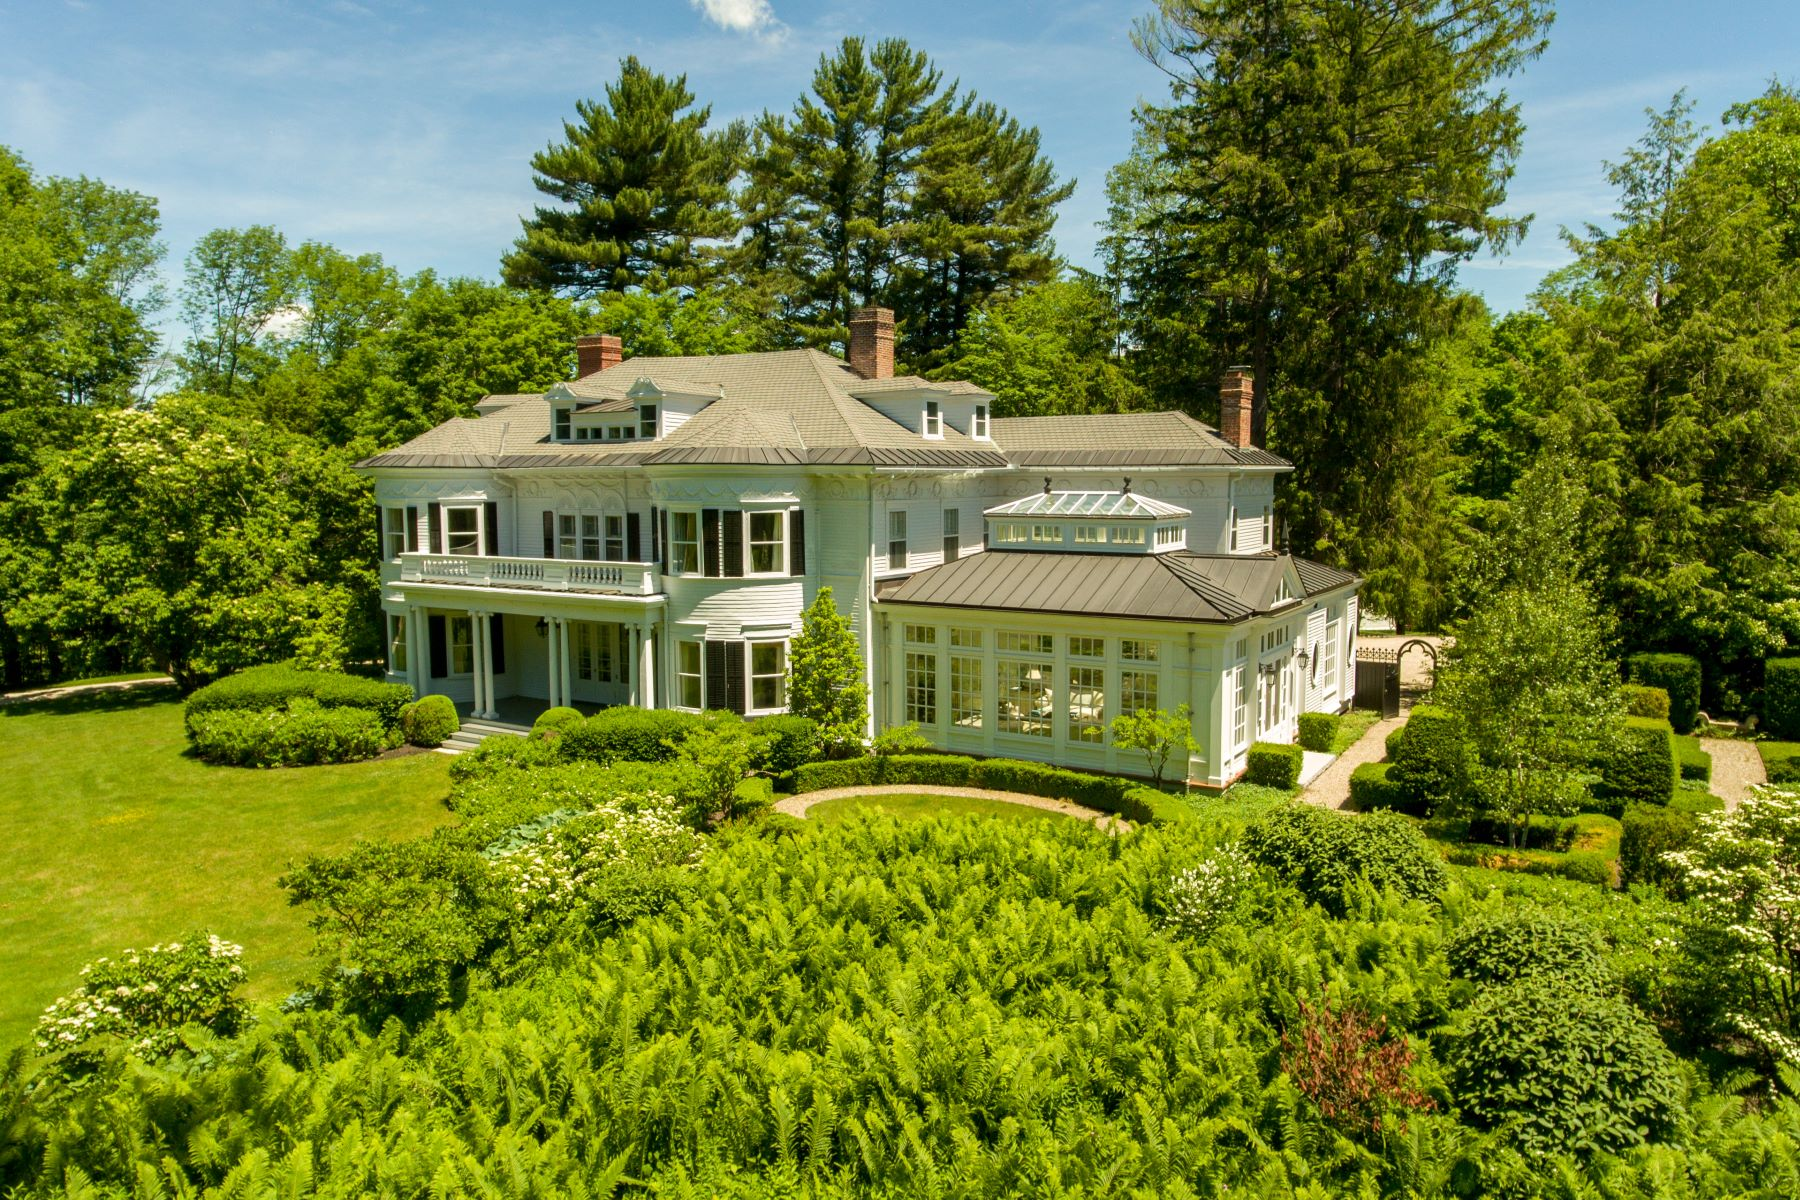 Single Family Home for Sale at Thistlewood - A Timeless & Classic Berkshire Cottage 151 Walker St Lenox, Massachusetts 01240 United States